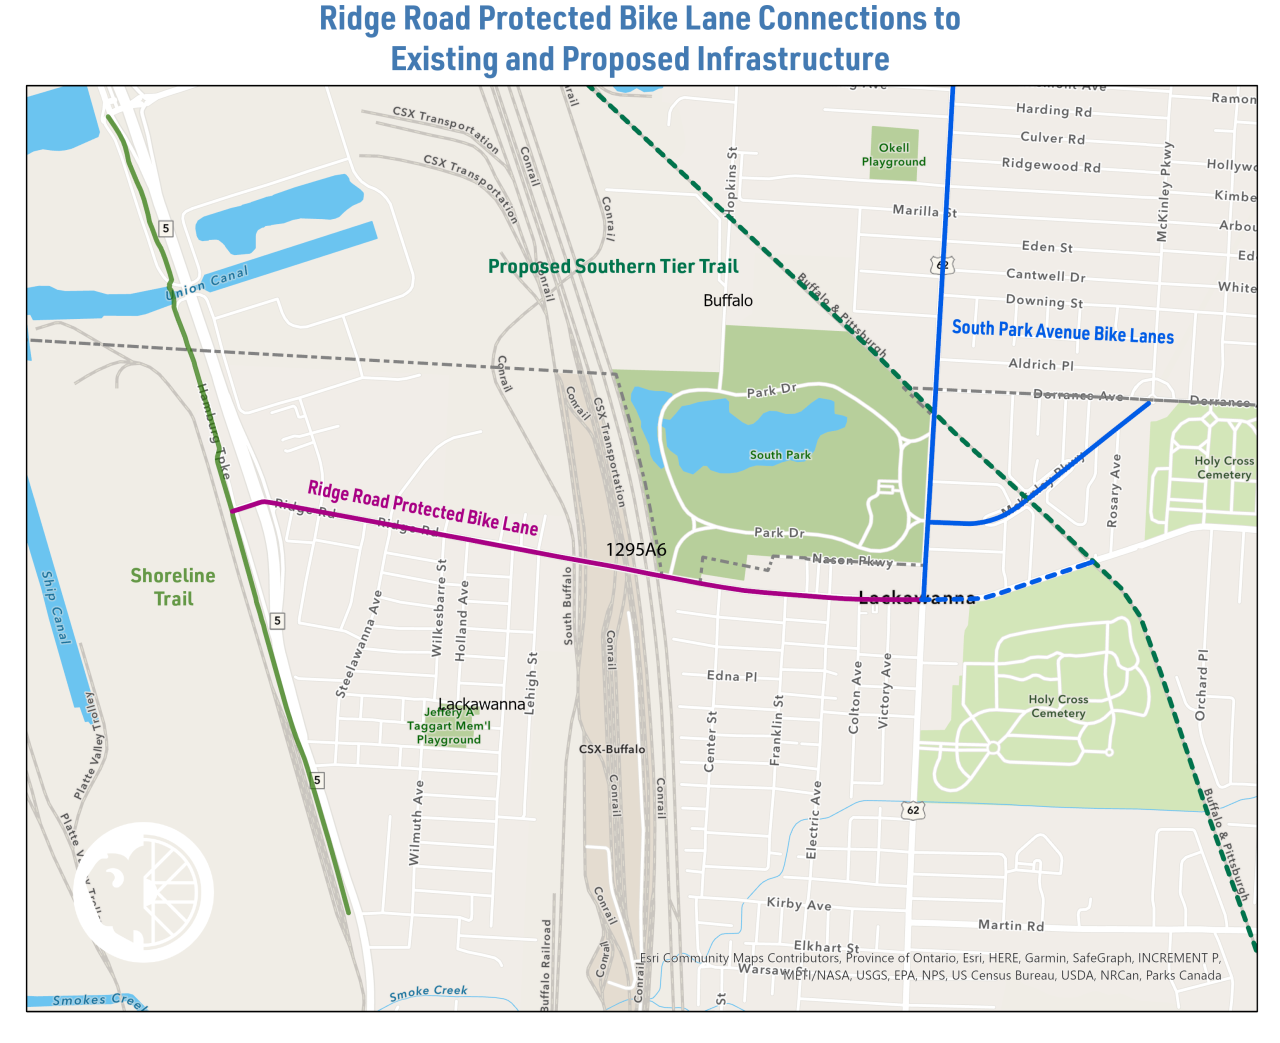 Ridge Road Protected Bike Lane Map